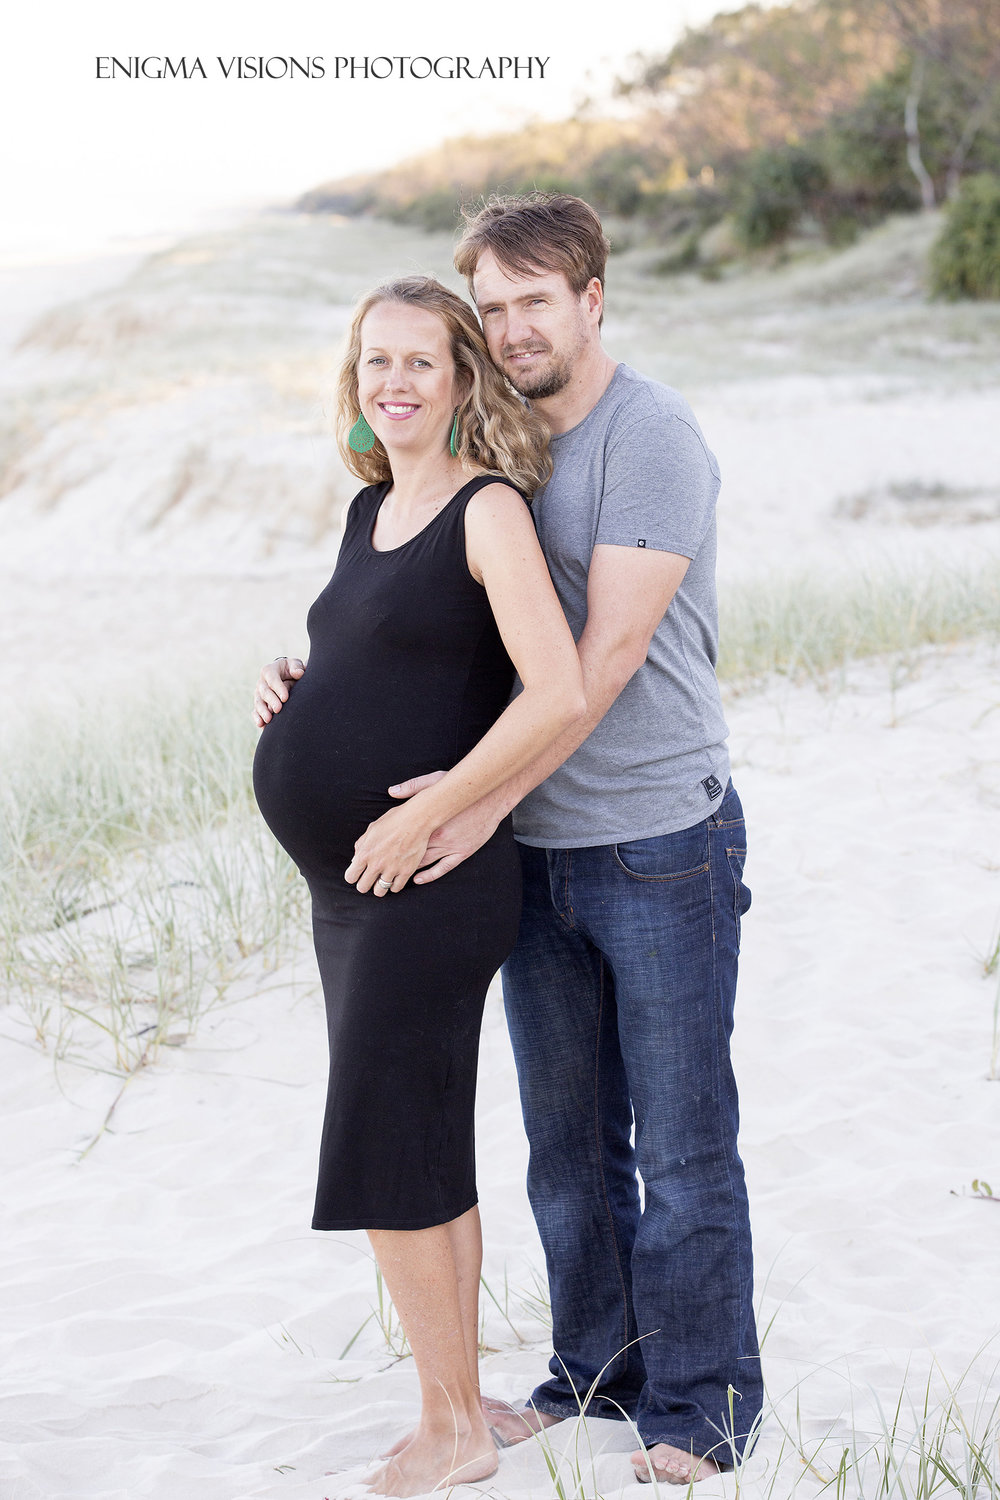 enigma_visions_photography_maternity_melandandrew_kingscliff (18).jpg